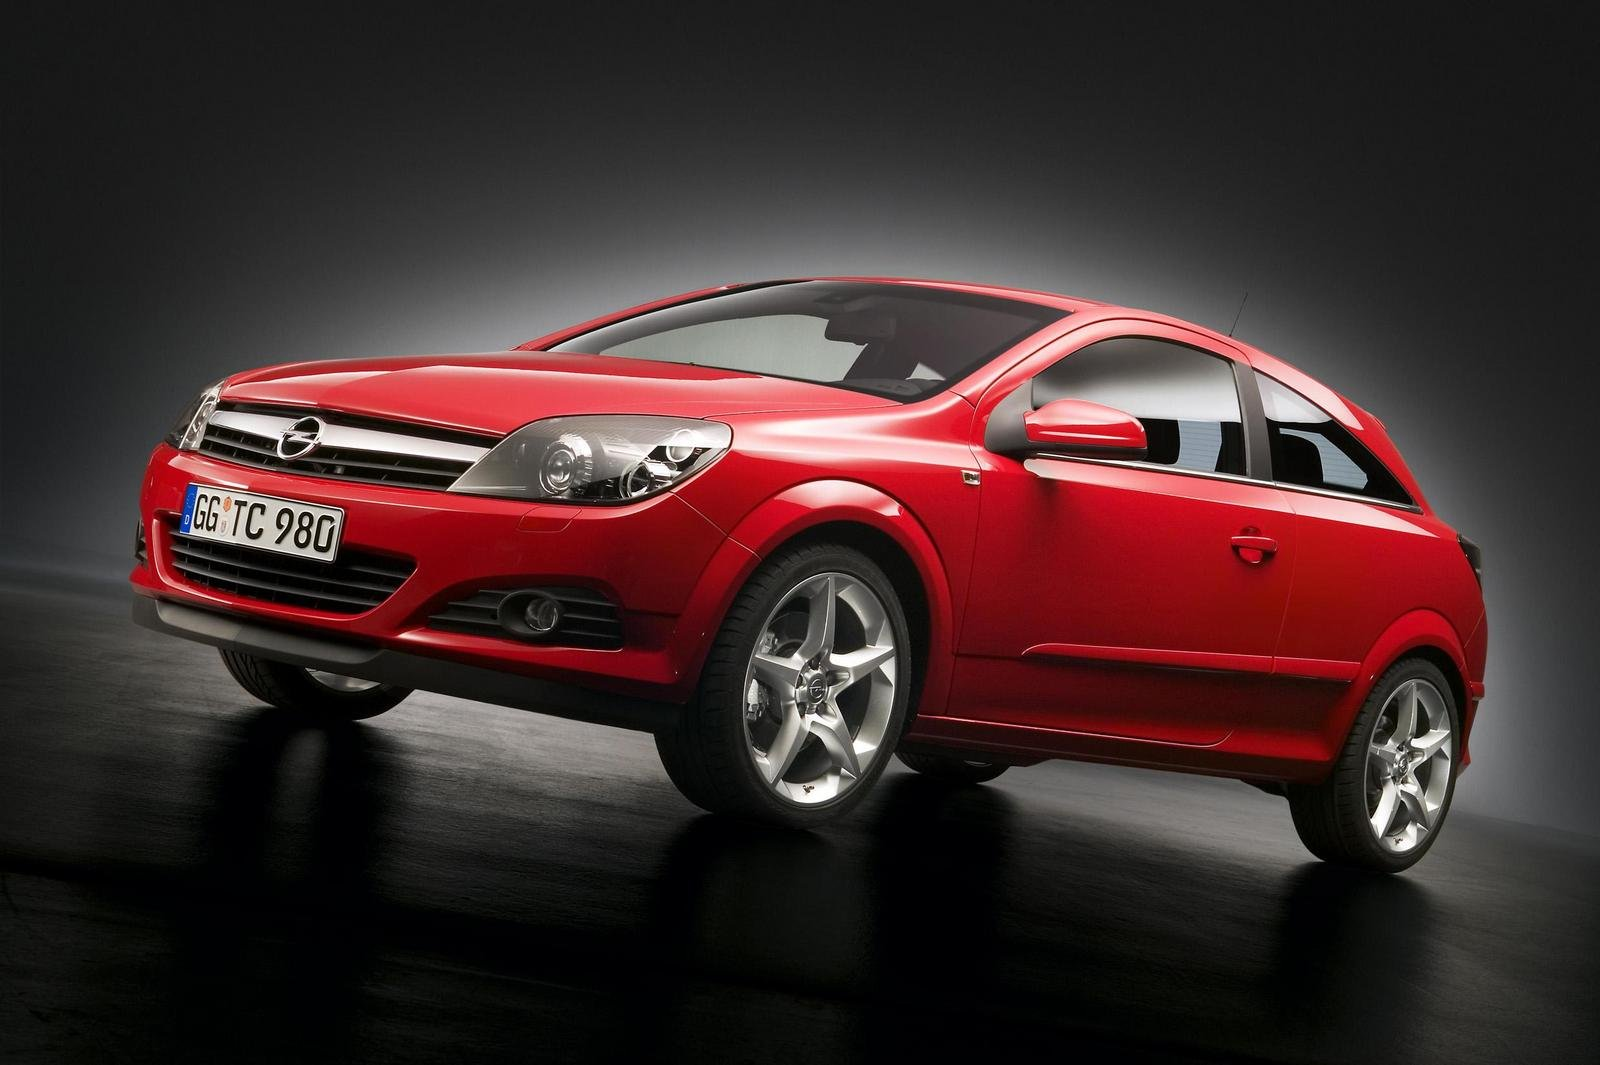 2007 opel astra gtc picture 140661 car review top speed. Black Bedroom Furniture Sets. Home Design Ideas